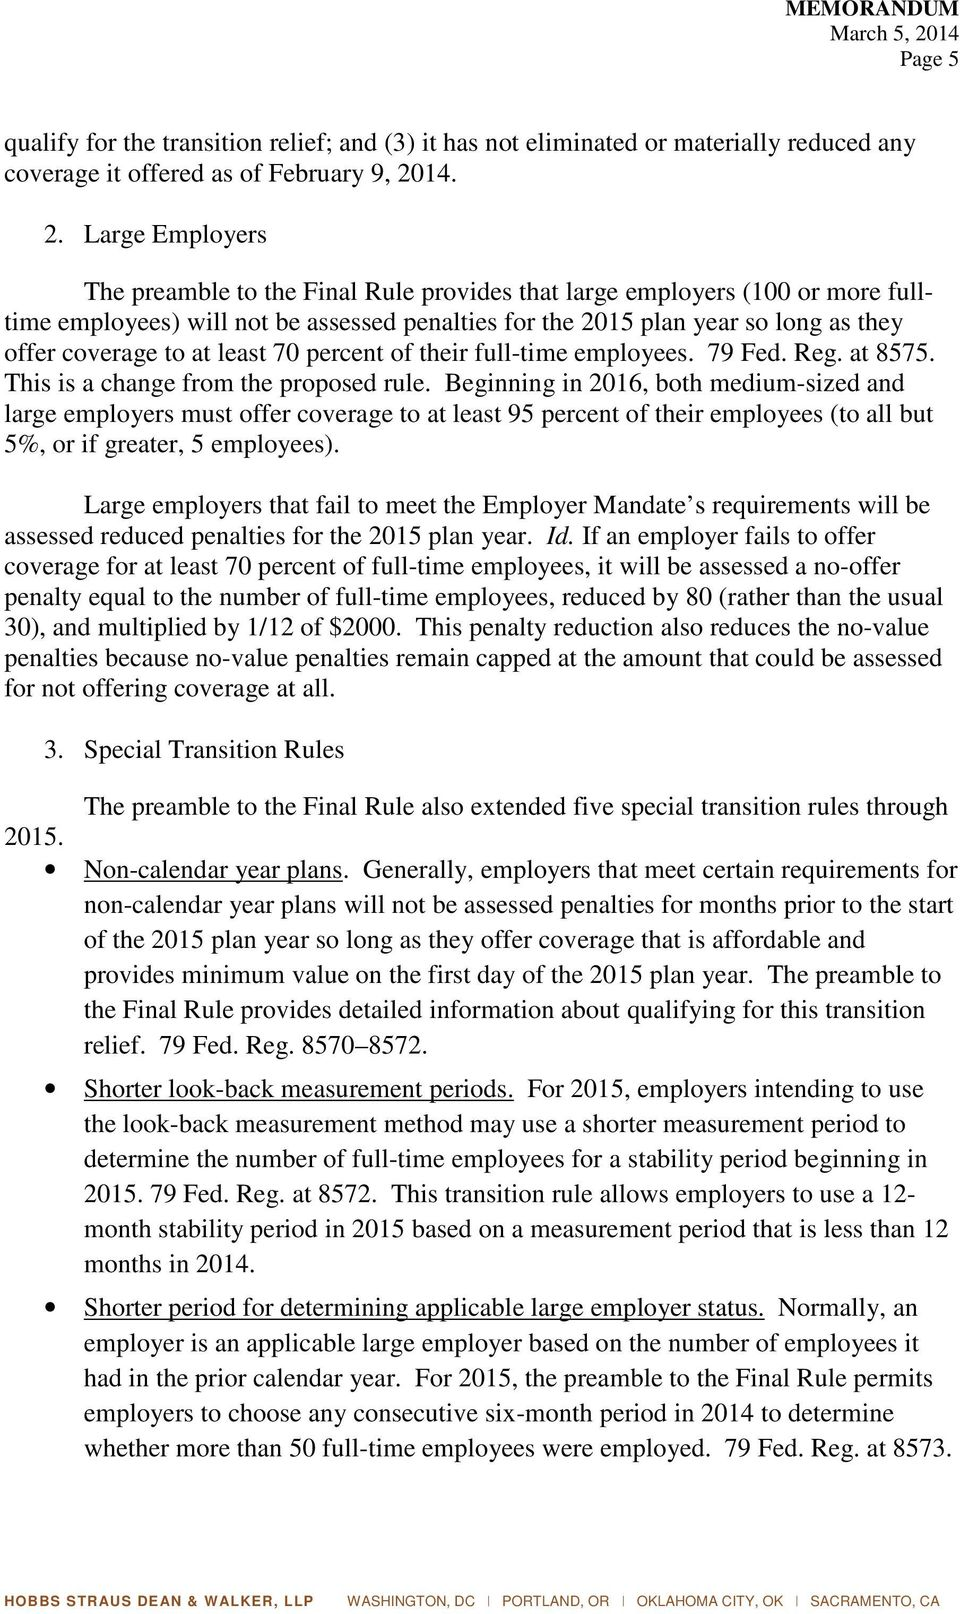 Large Employers The preamble to the Final Rule provides that large employers (100 or more fulltime employees) will not be assessed penalties for the 2015 plan year so long as they offer coverage to